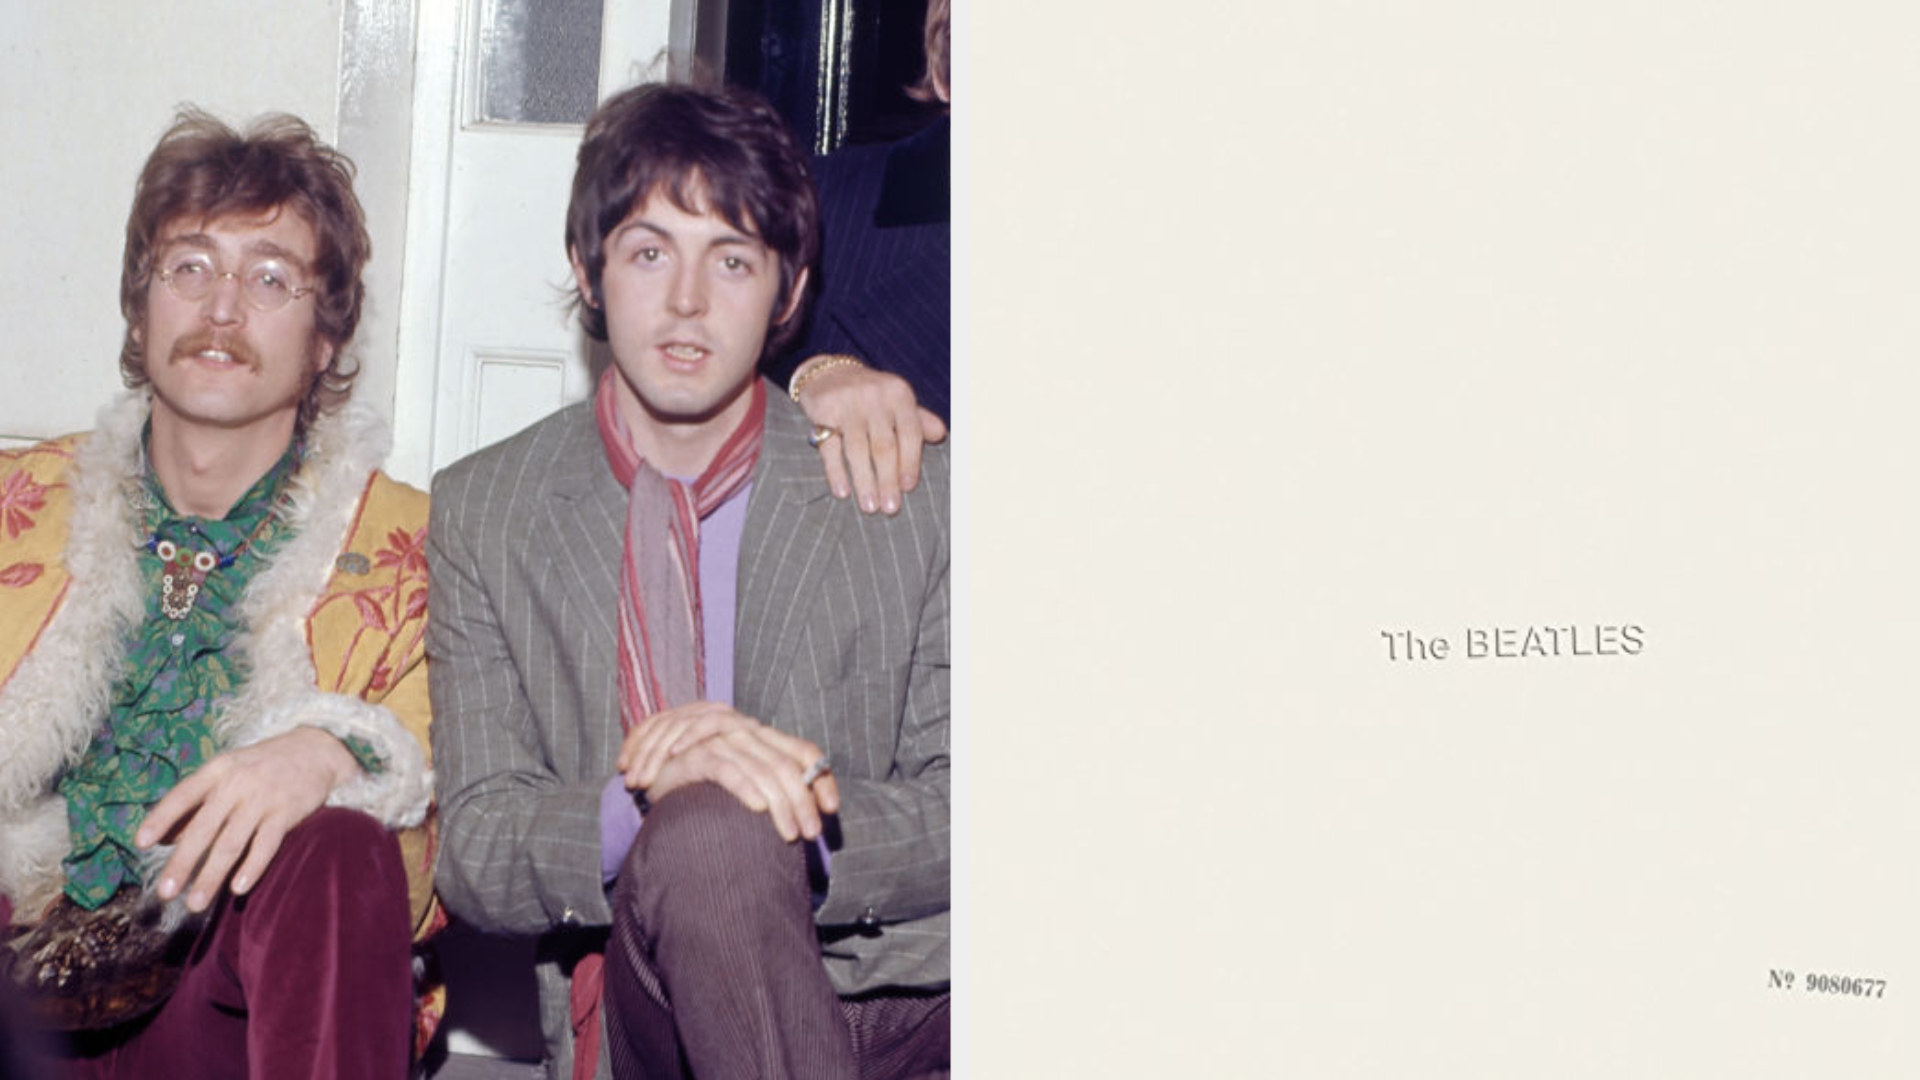 """John Lennon and Paul McCartney posing together in the late '60s; The Beatles' album cover for """"The White Album"""""""